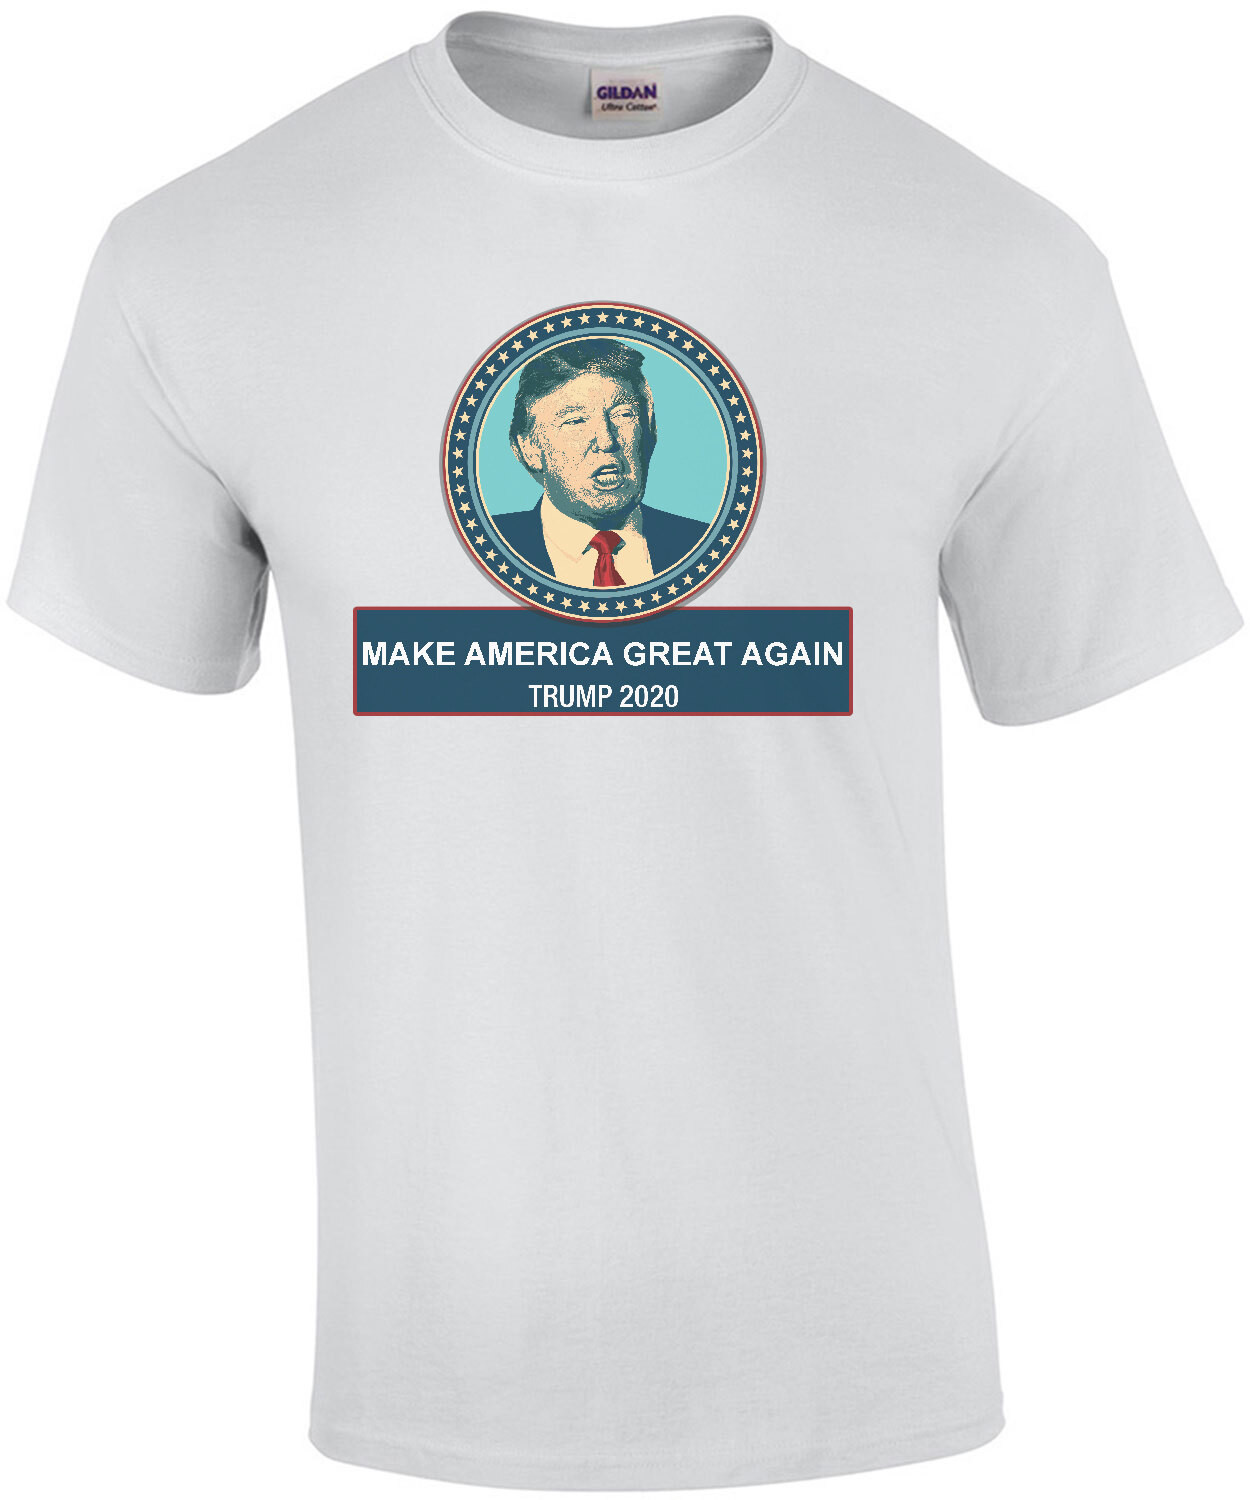 Make America Great Again - Trump 2020 - Pro Trump 2020 Election T-Shirt